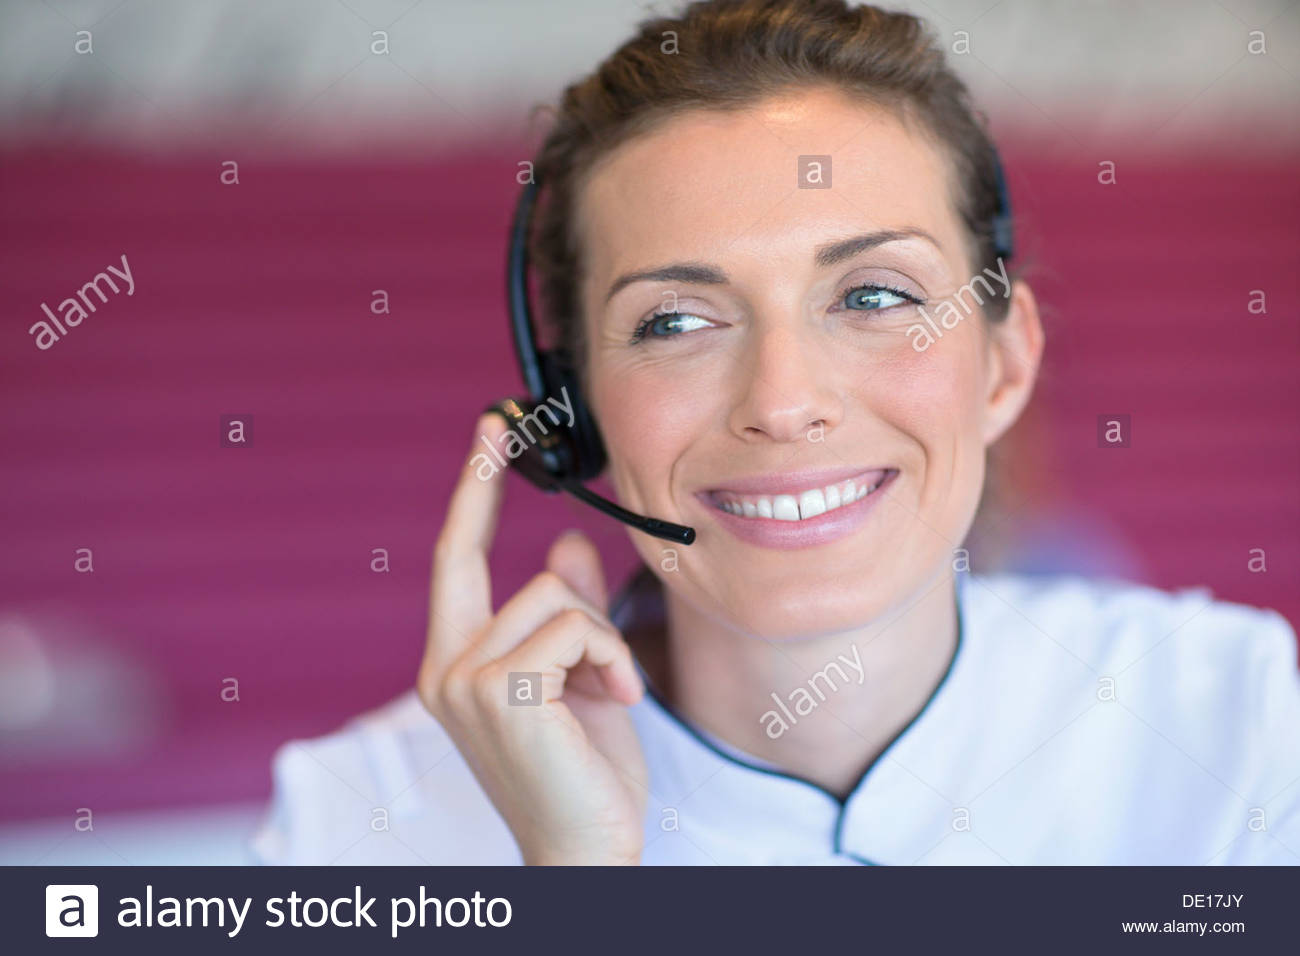 Close up of smiling beautician talking on the phone with headset - Stock Image